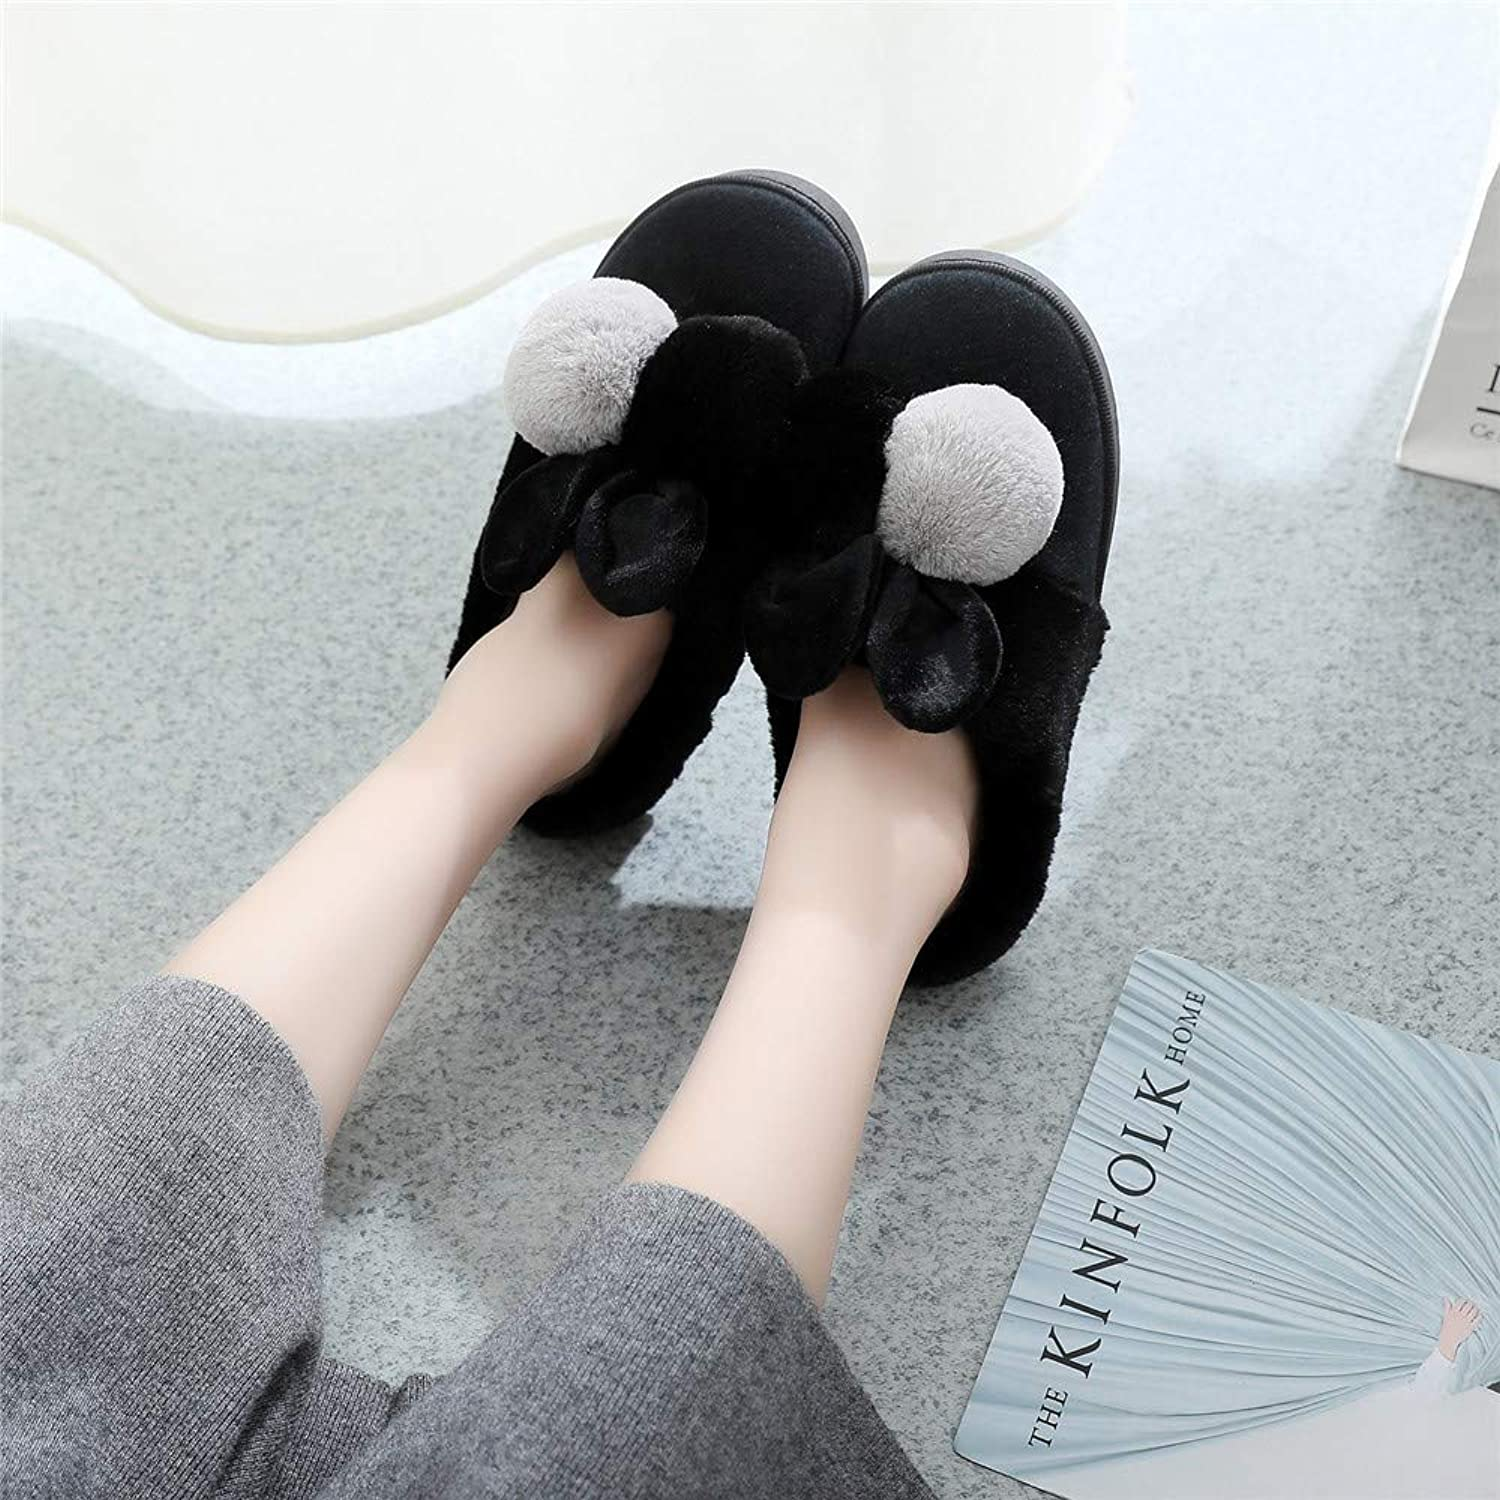 NIGHT WALL Comfortable Slip-on Winter Cartoon Ball Rabbit Ears Women's Home Cotton Slippers (Pink) House shoes Indoor & Outdoor